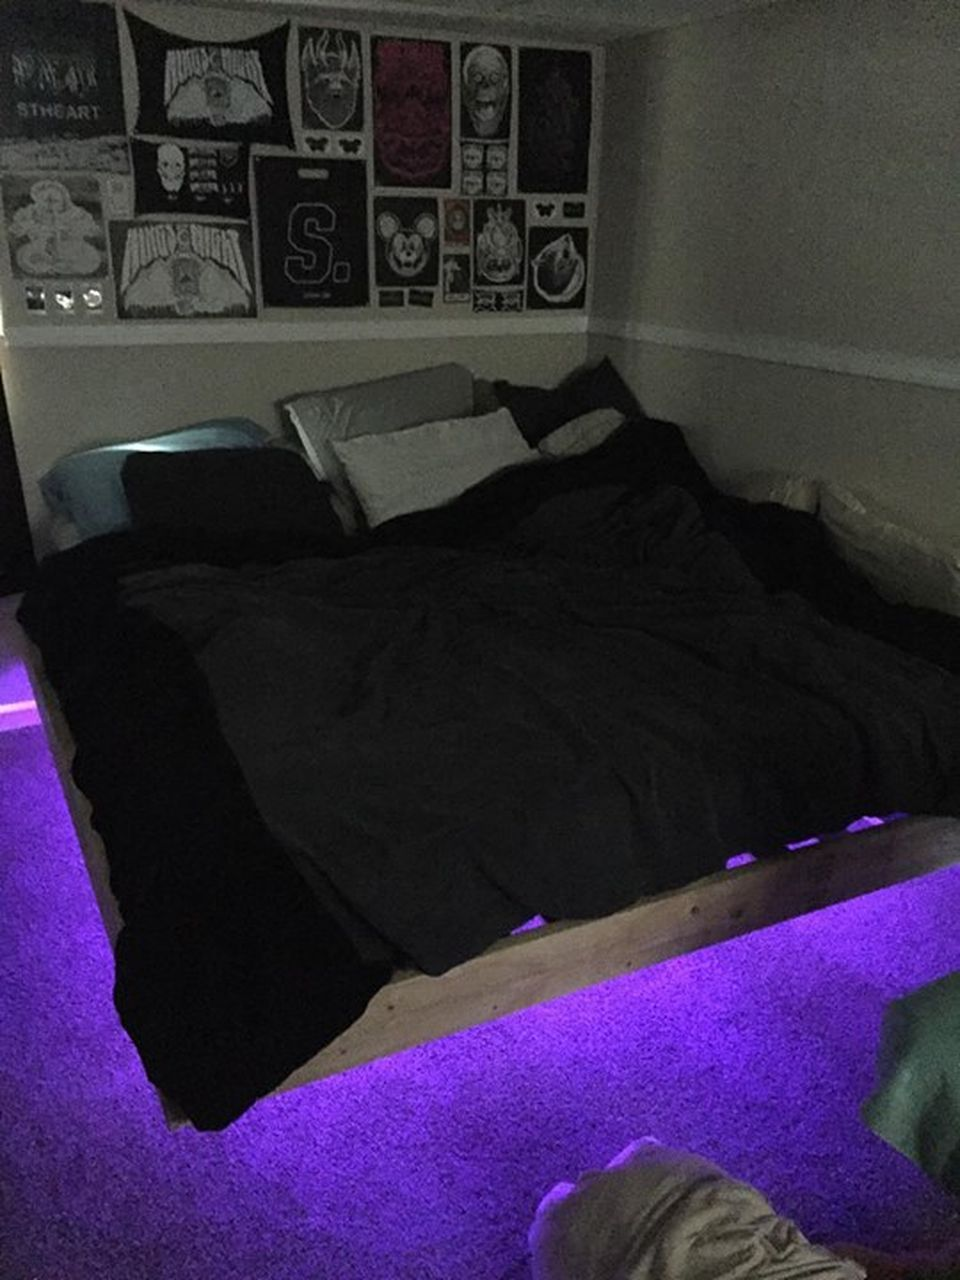 Best Amazing Modern Floating Bed Design With Under Light Bed 640 x 480